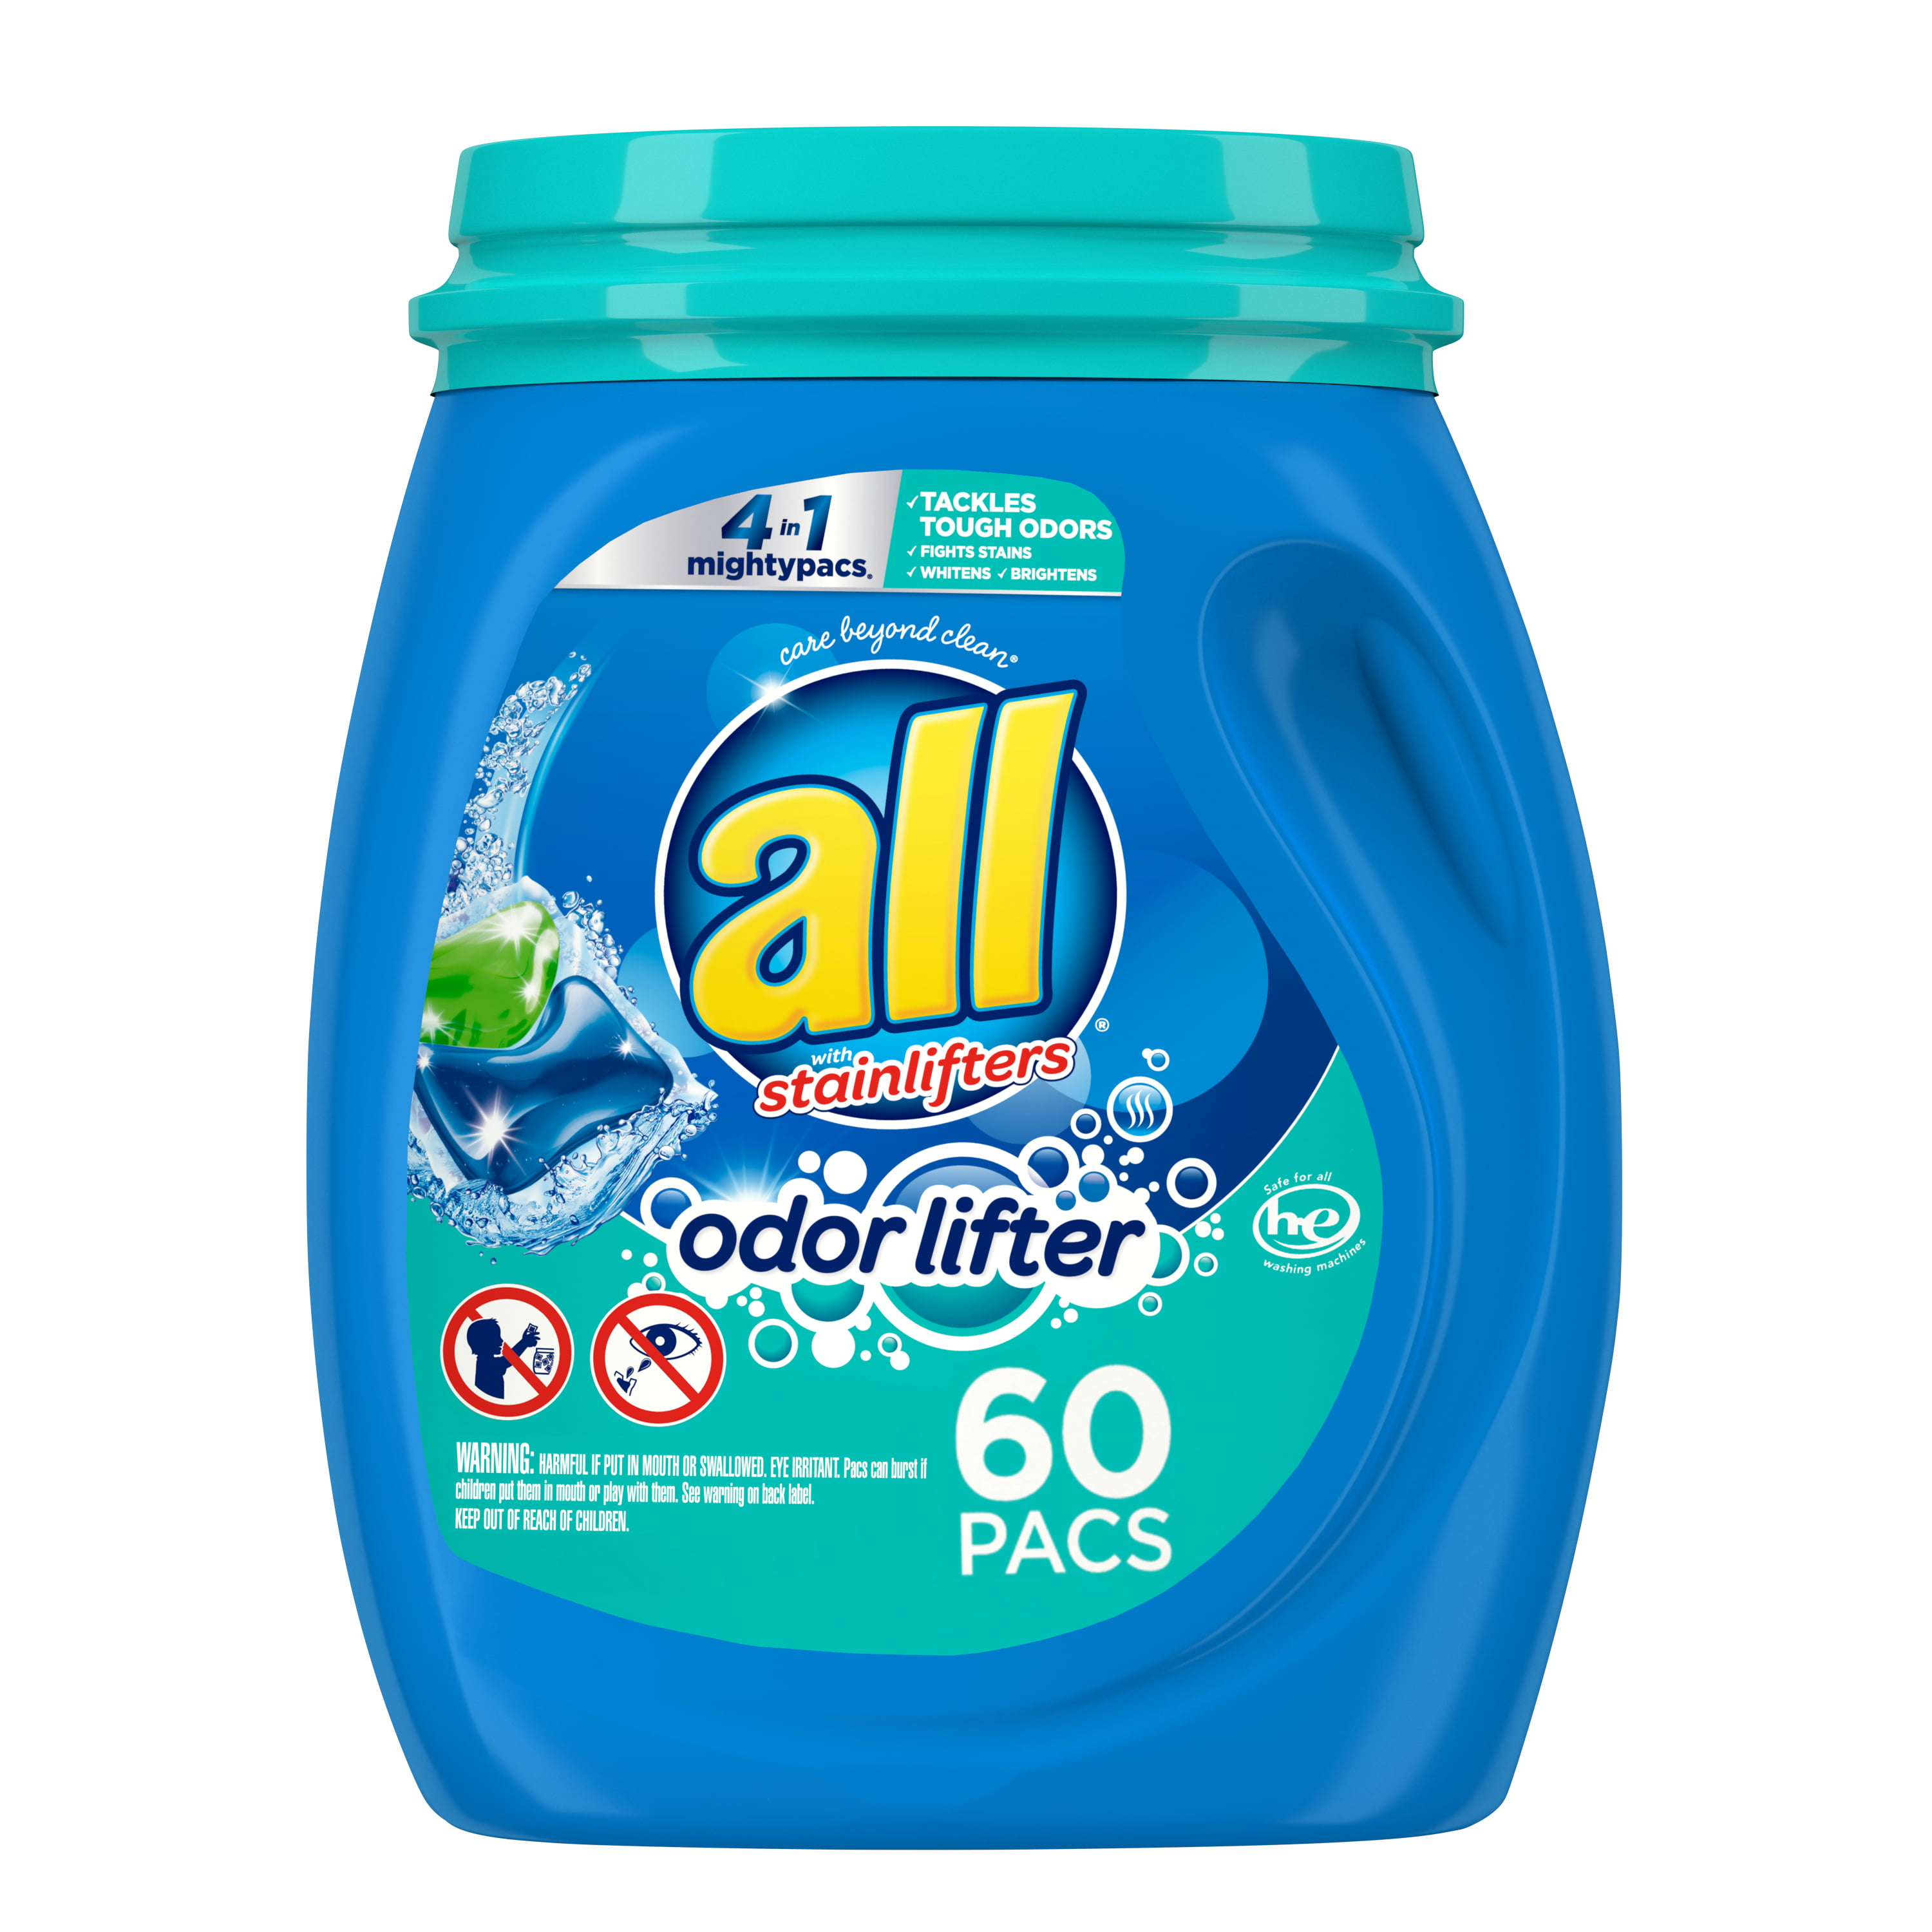 all Mighty Pacs Laundry Detergent, 4 in 1 with Odor Lifter, Tub, 60 Count